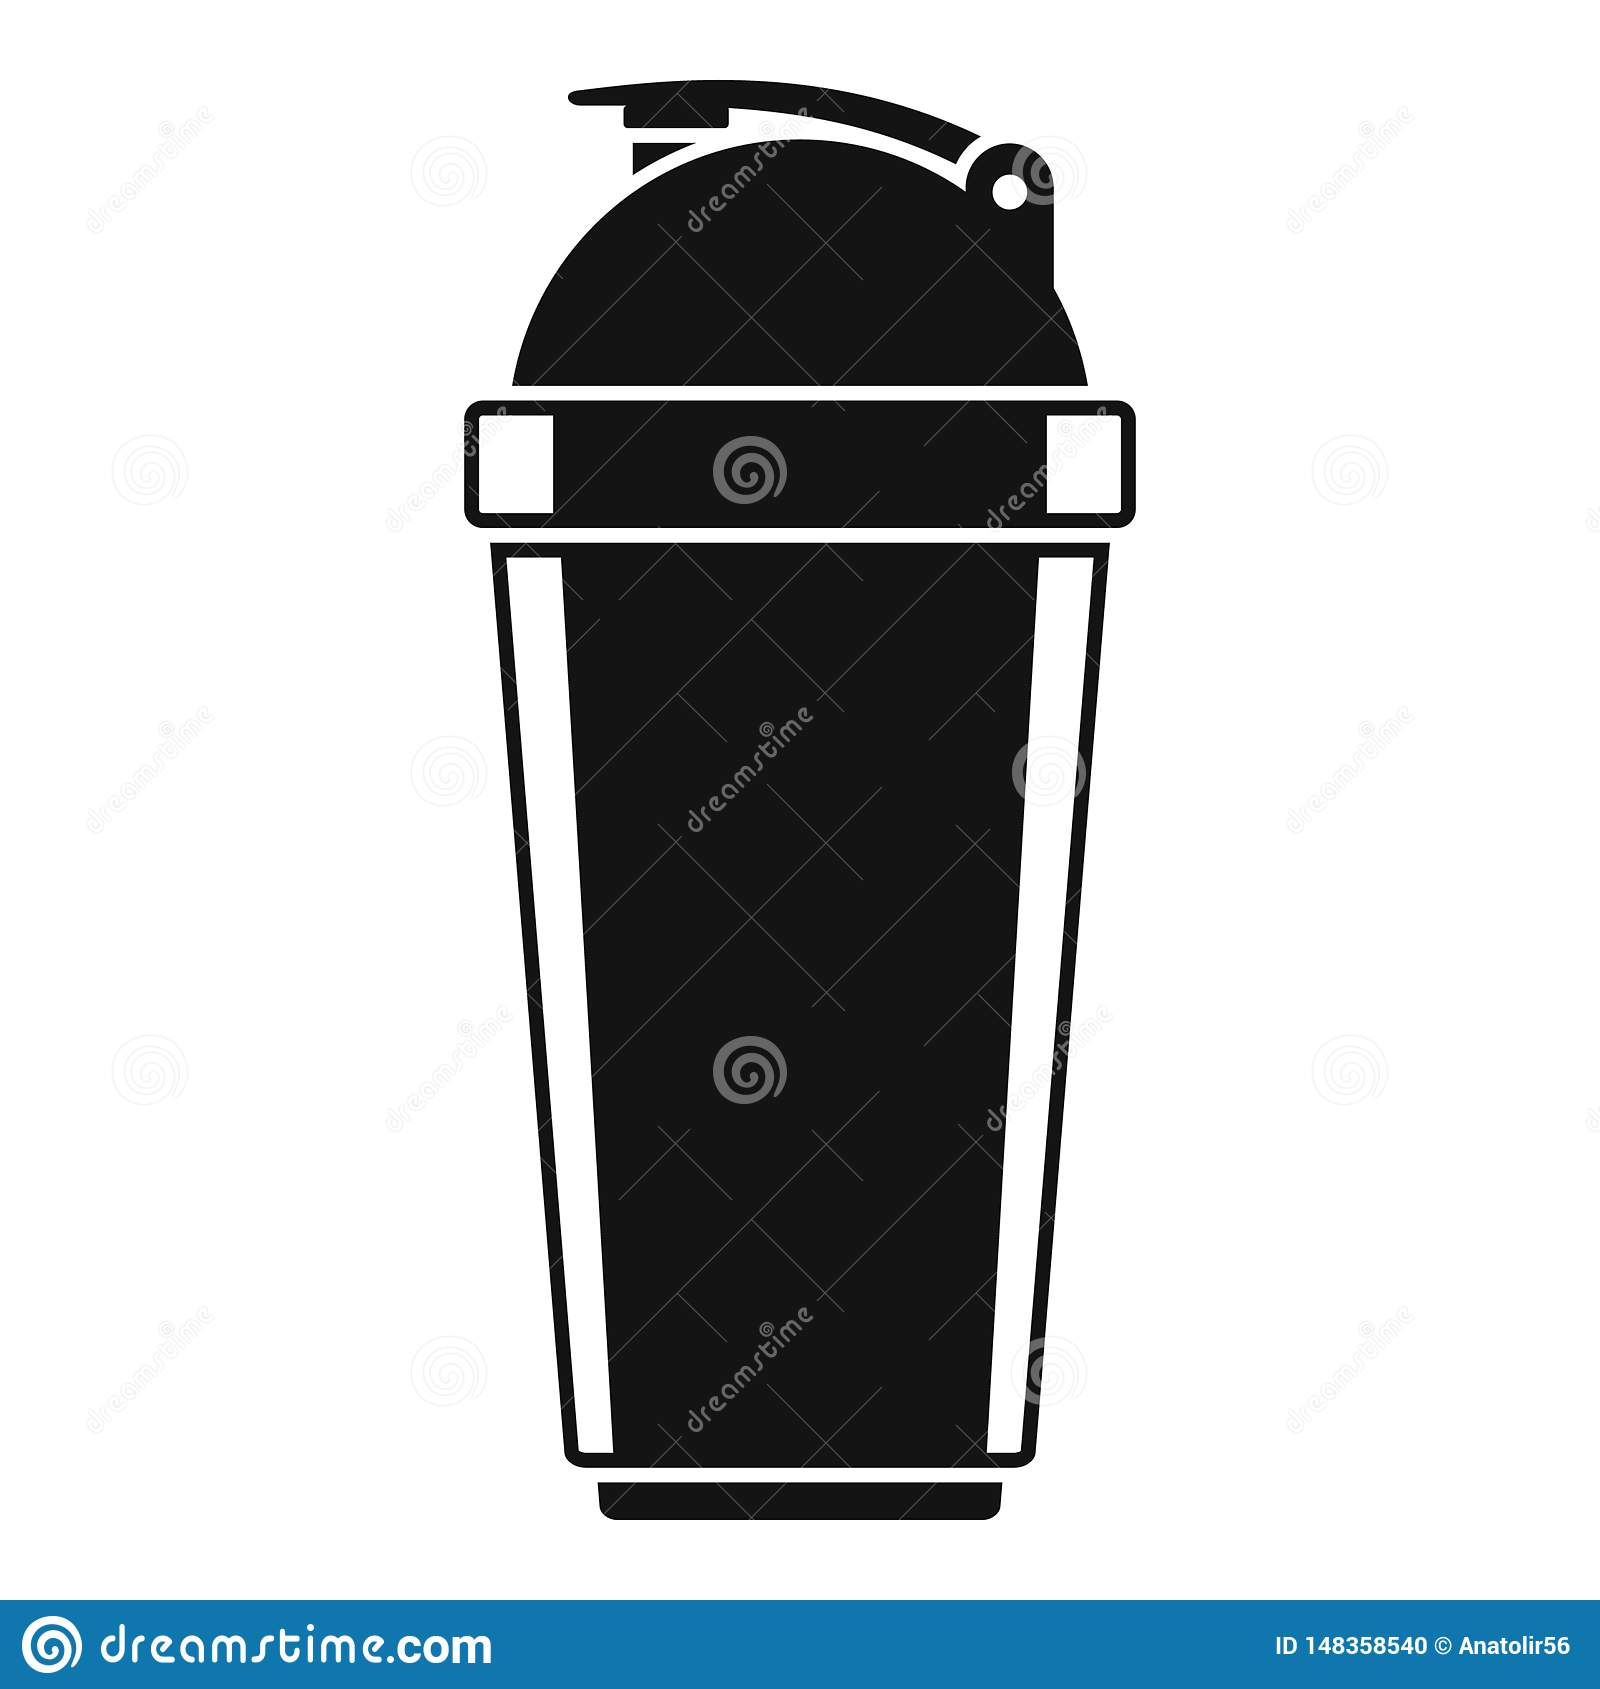 Plastic shaker bottle icon, simple style